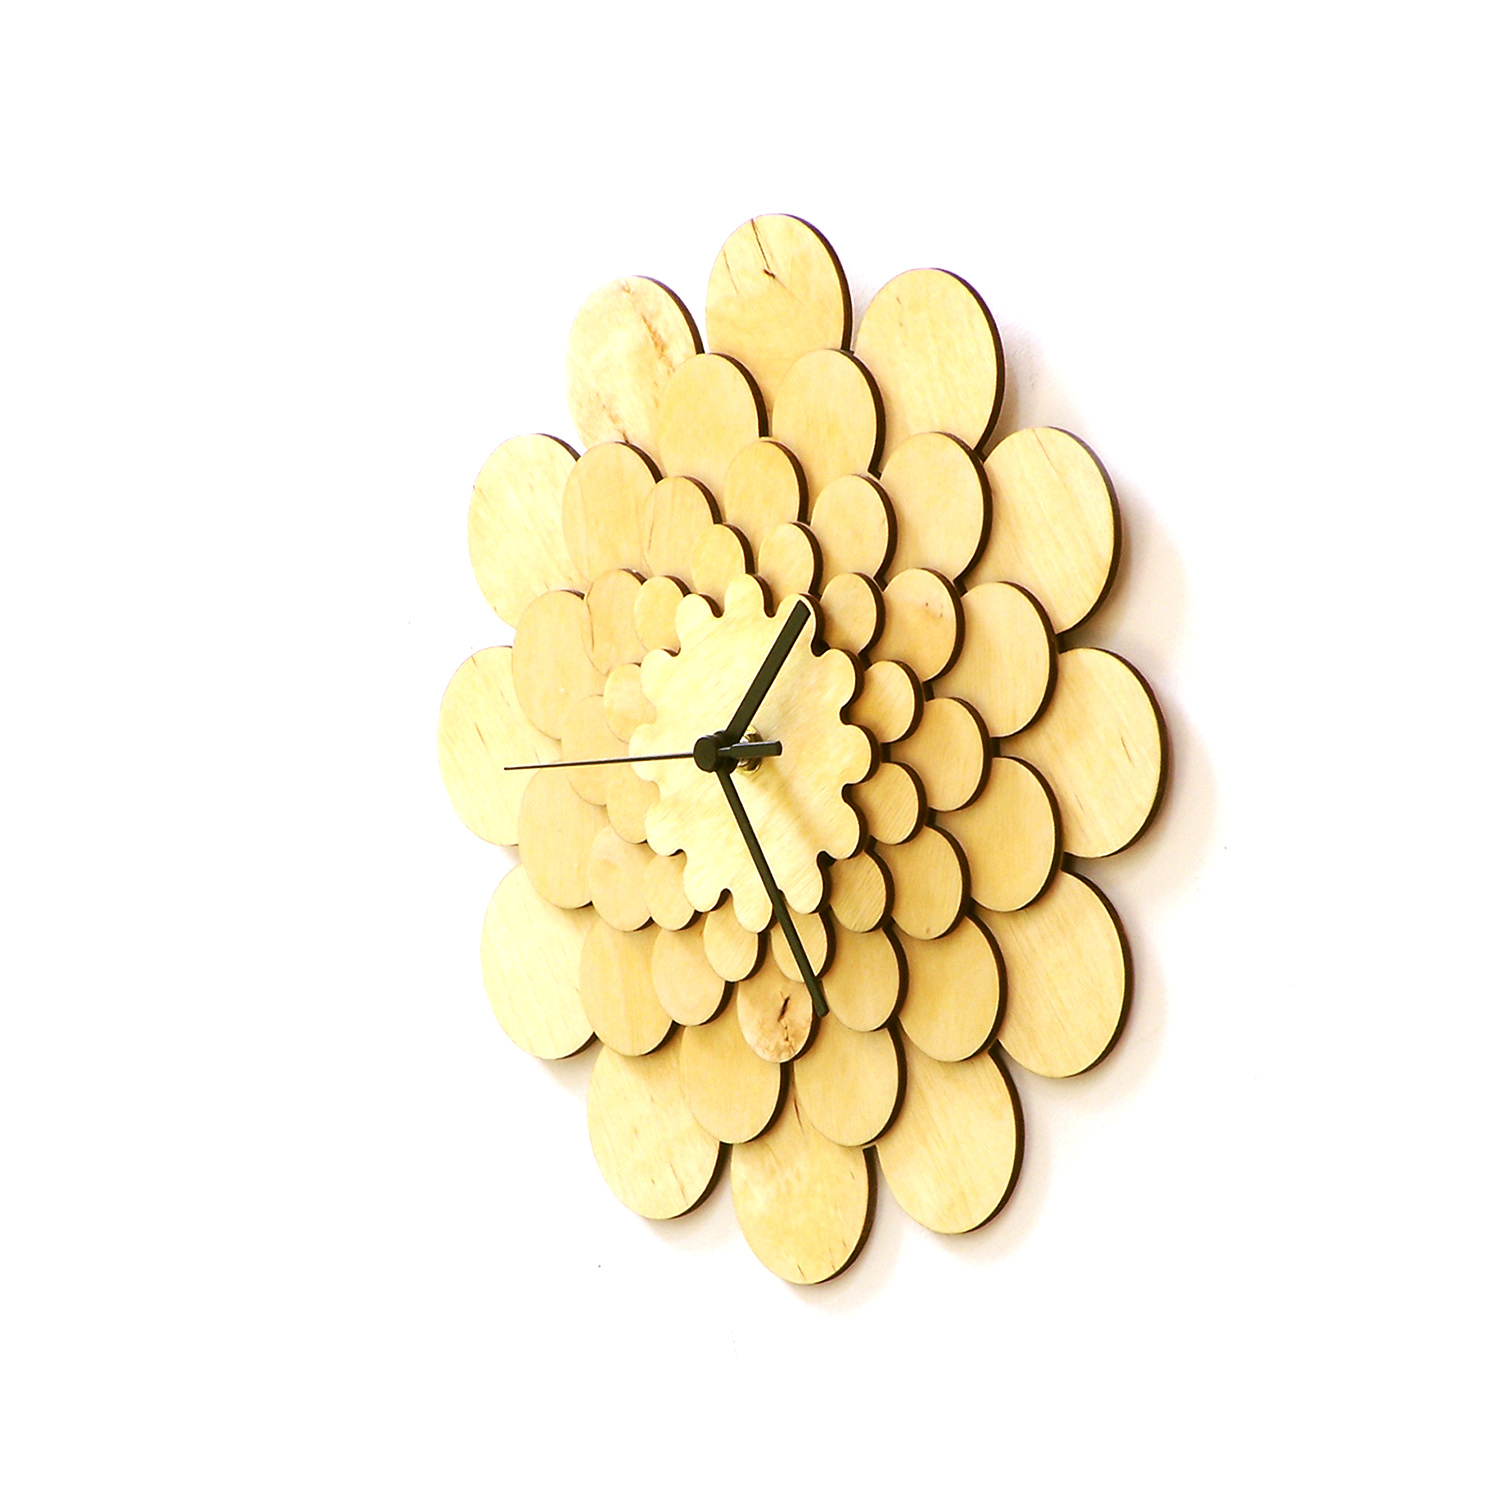 Natural tone wooden wall clock with floral appearance, a wall art - Dahlia M image 3